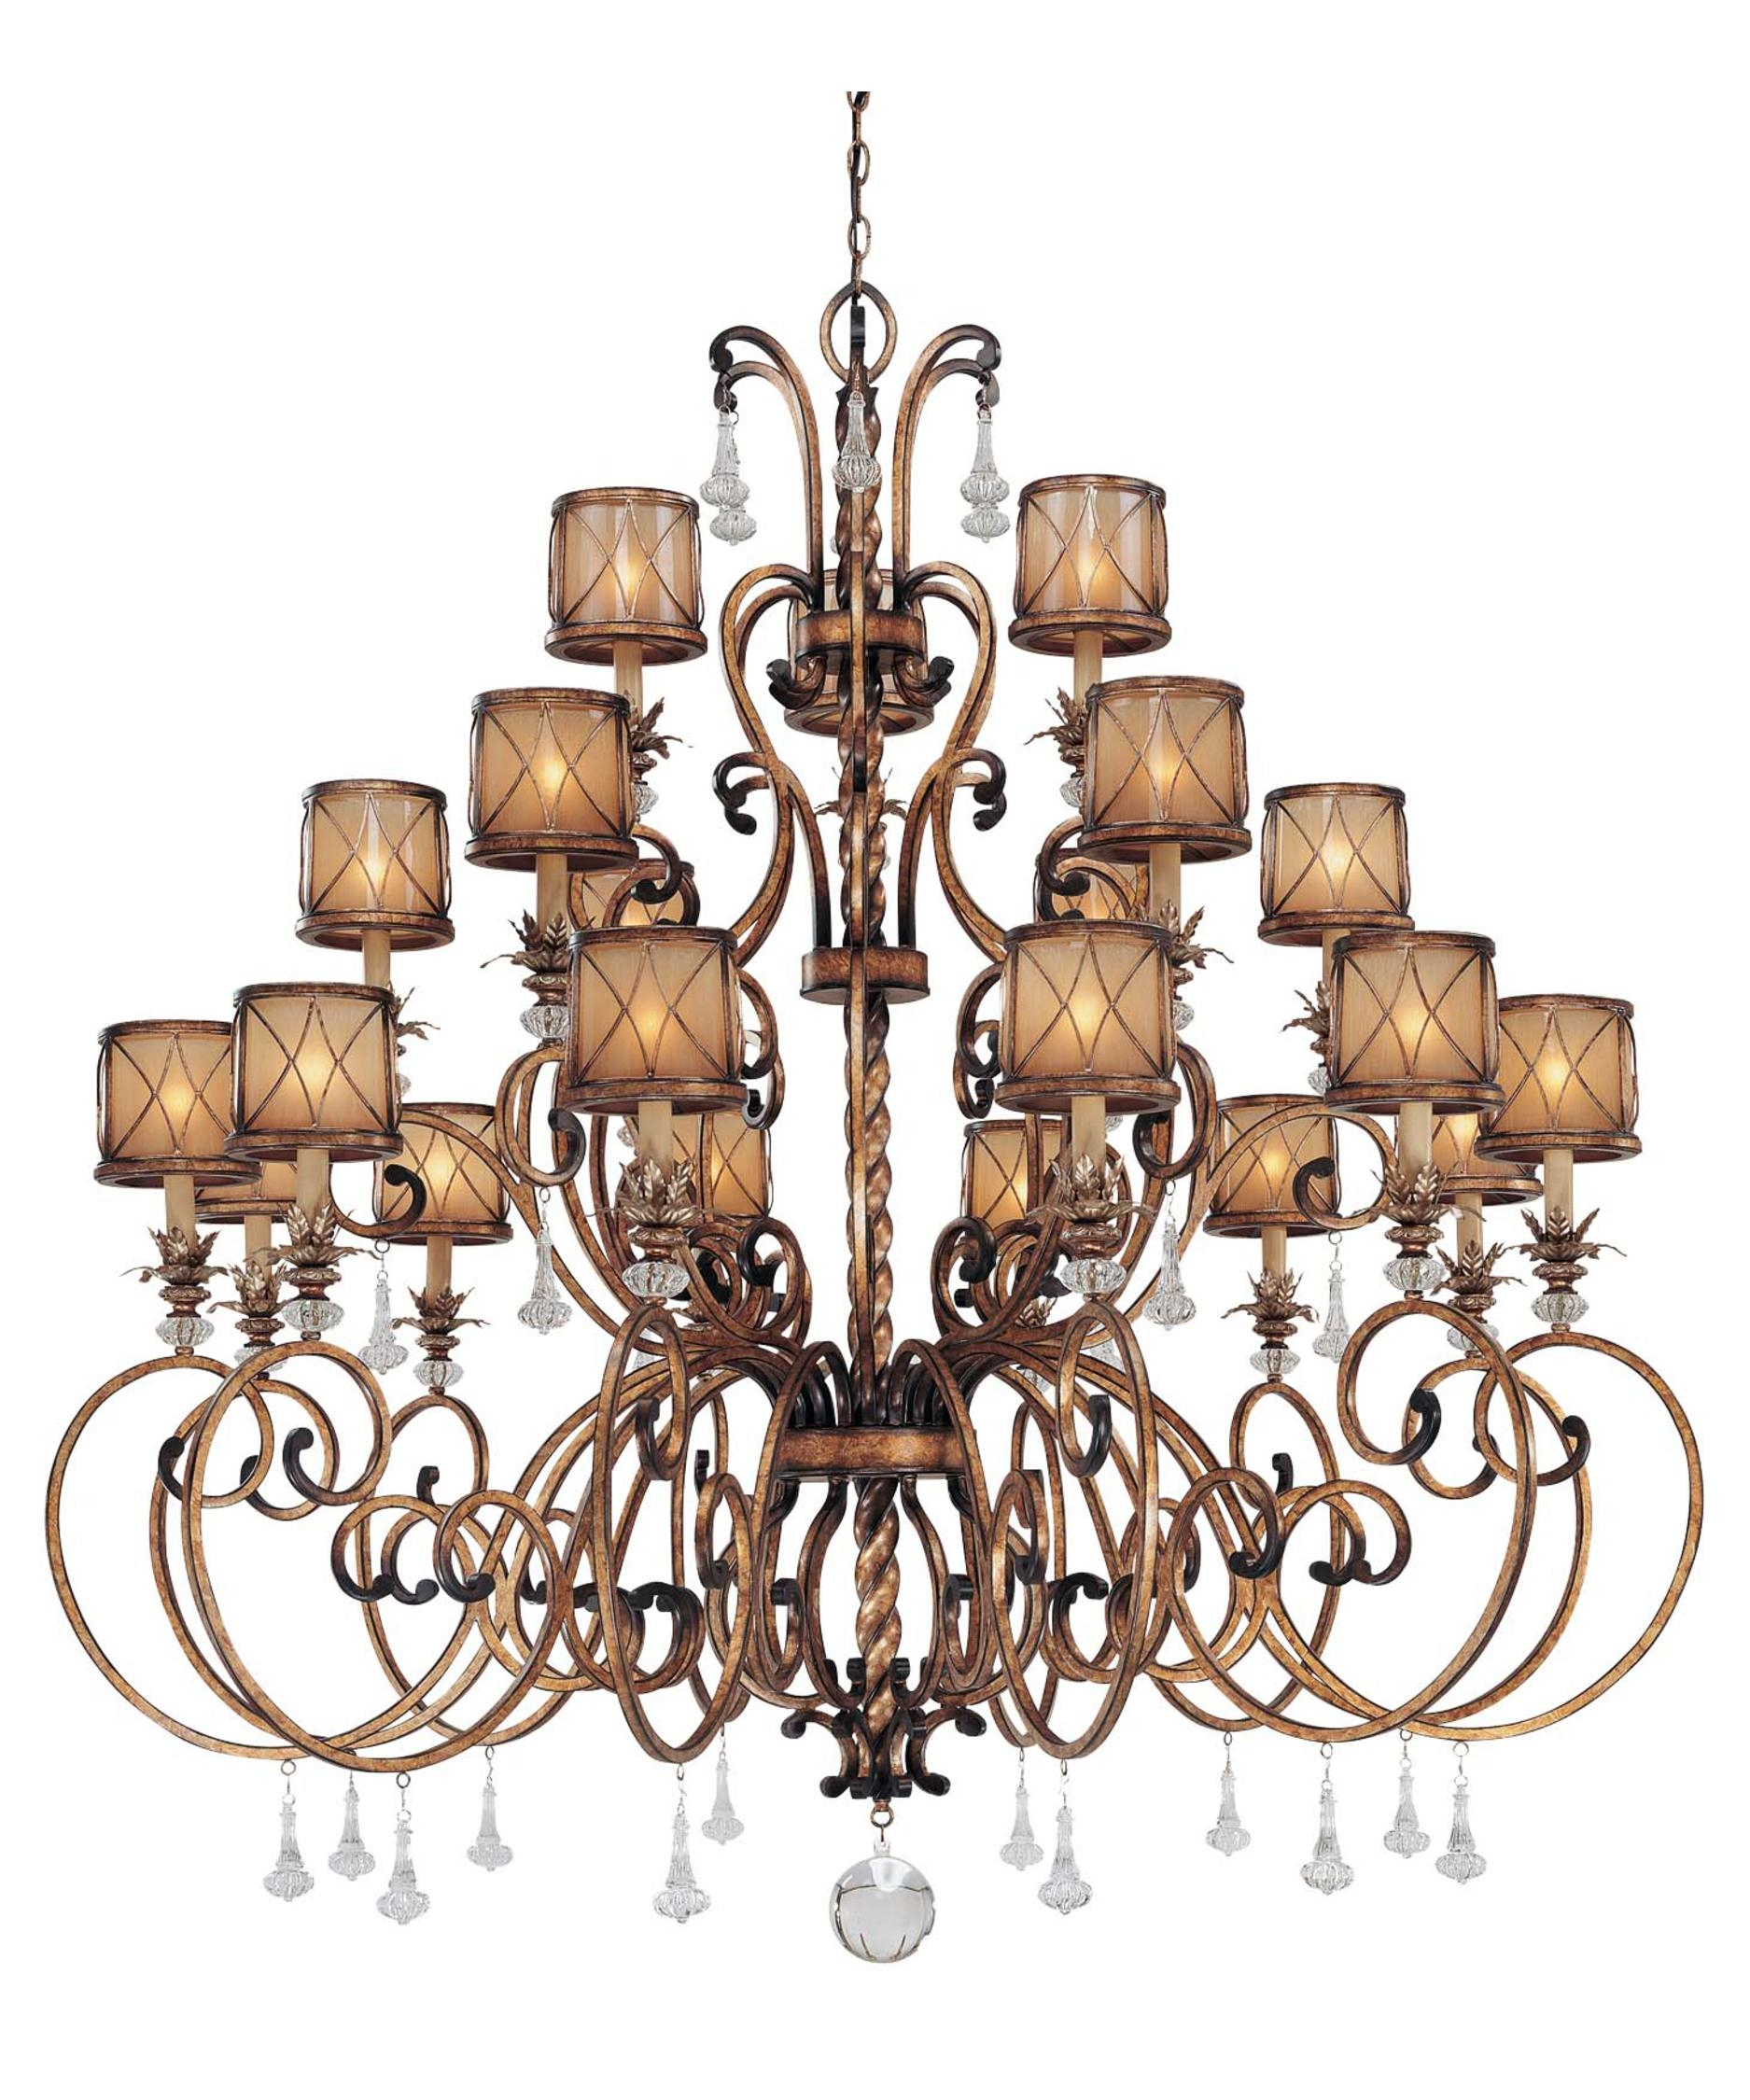 Minka Lavery 4759 Aston Court 59 Inch Wide 21 Light Chandelier Intended For Large Bronze Chandelier (Image 12 of 15)